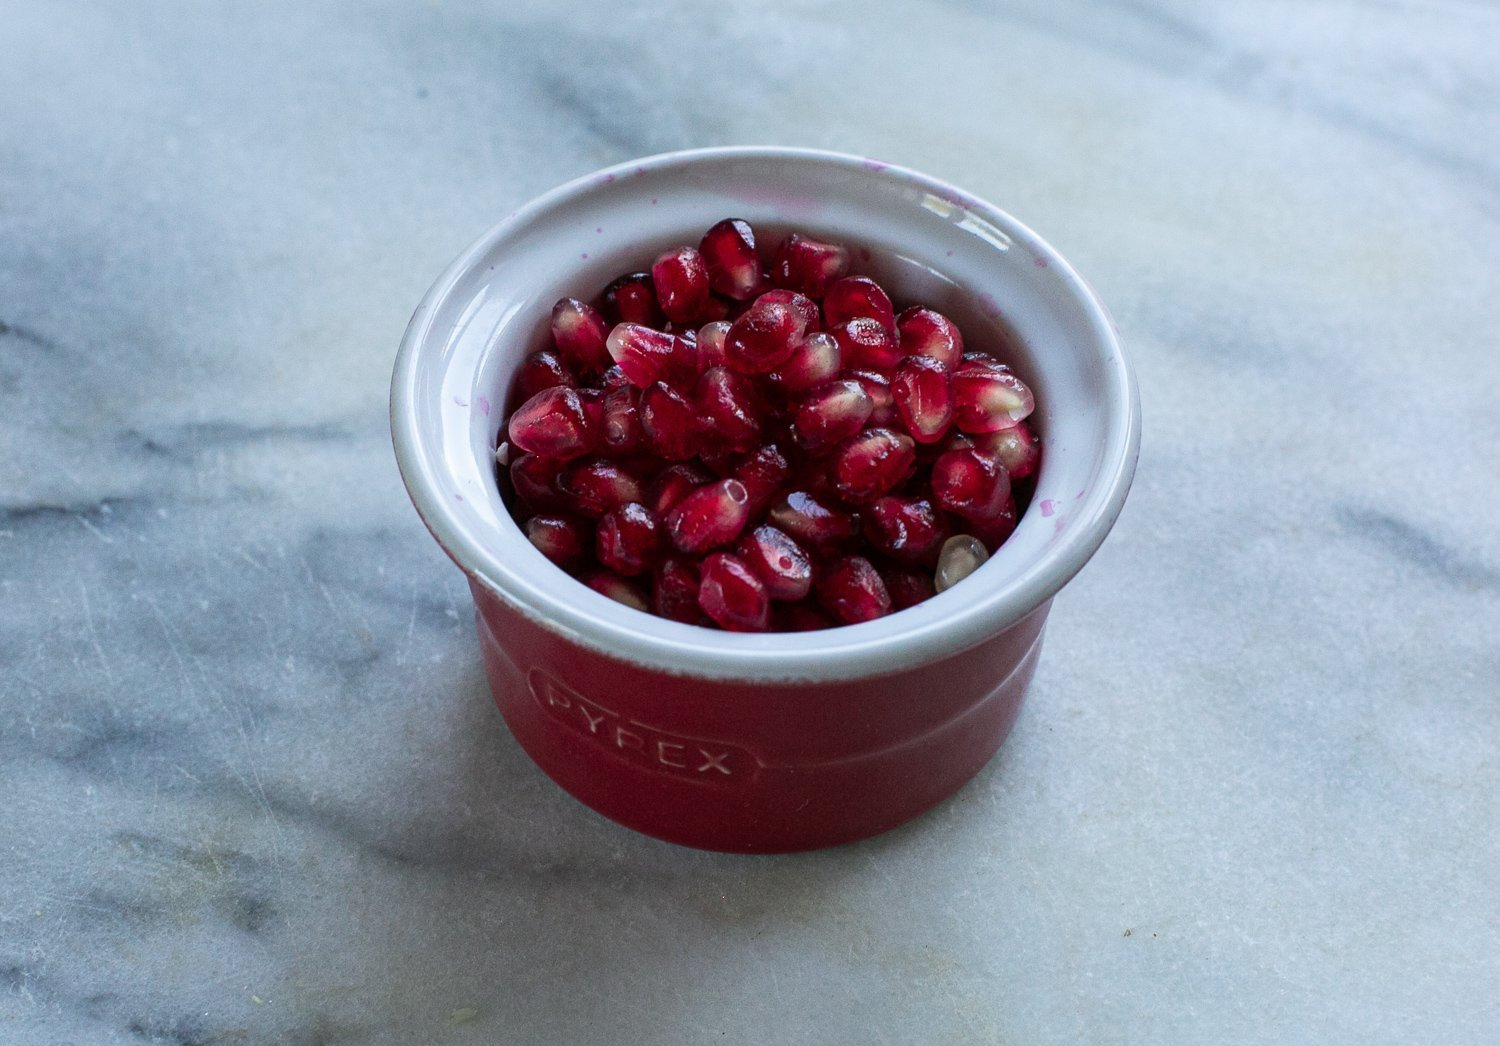 Pomegranate seeds in a ramekin